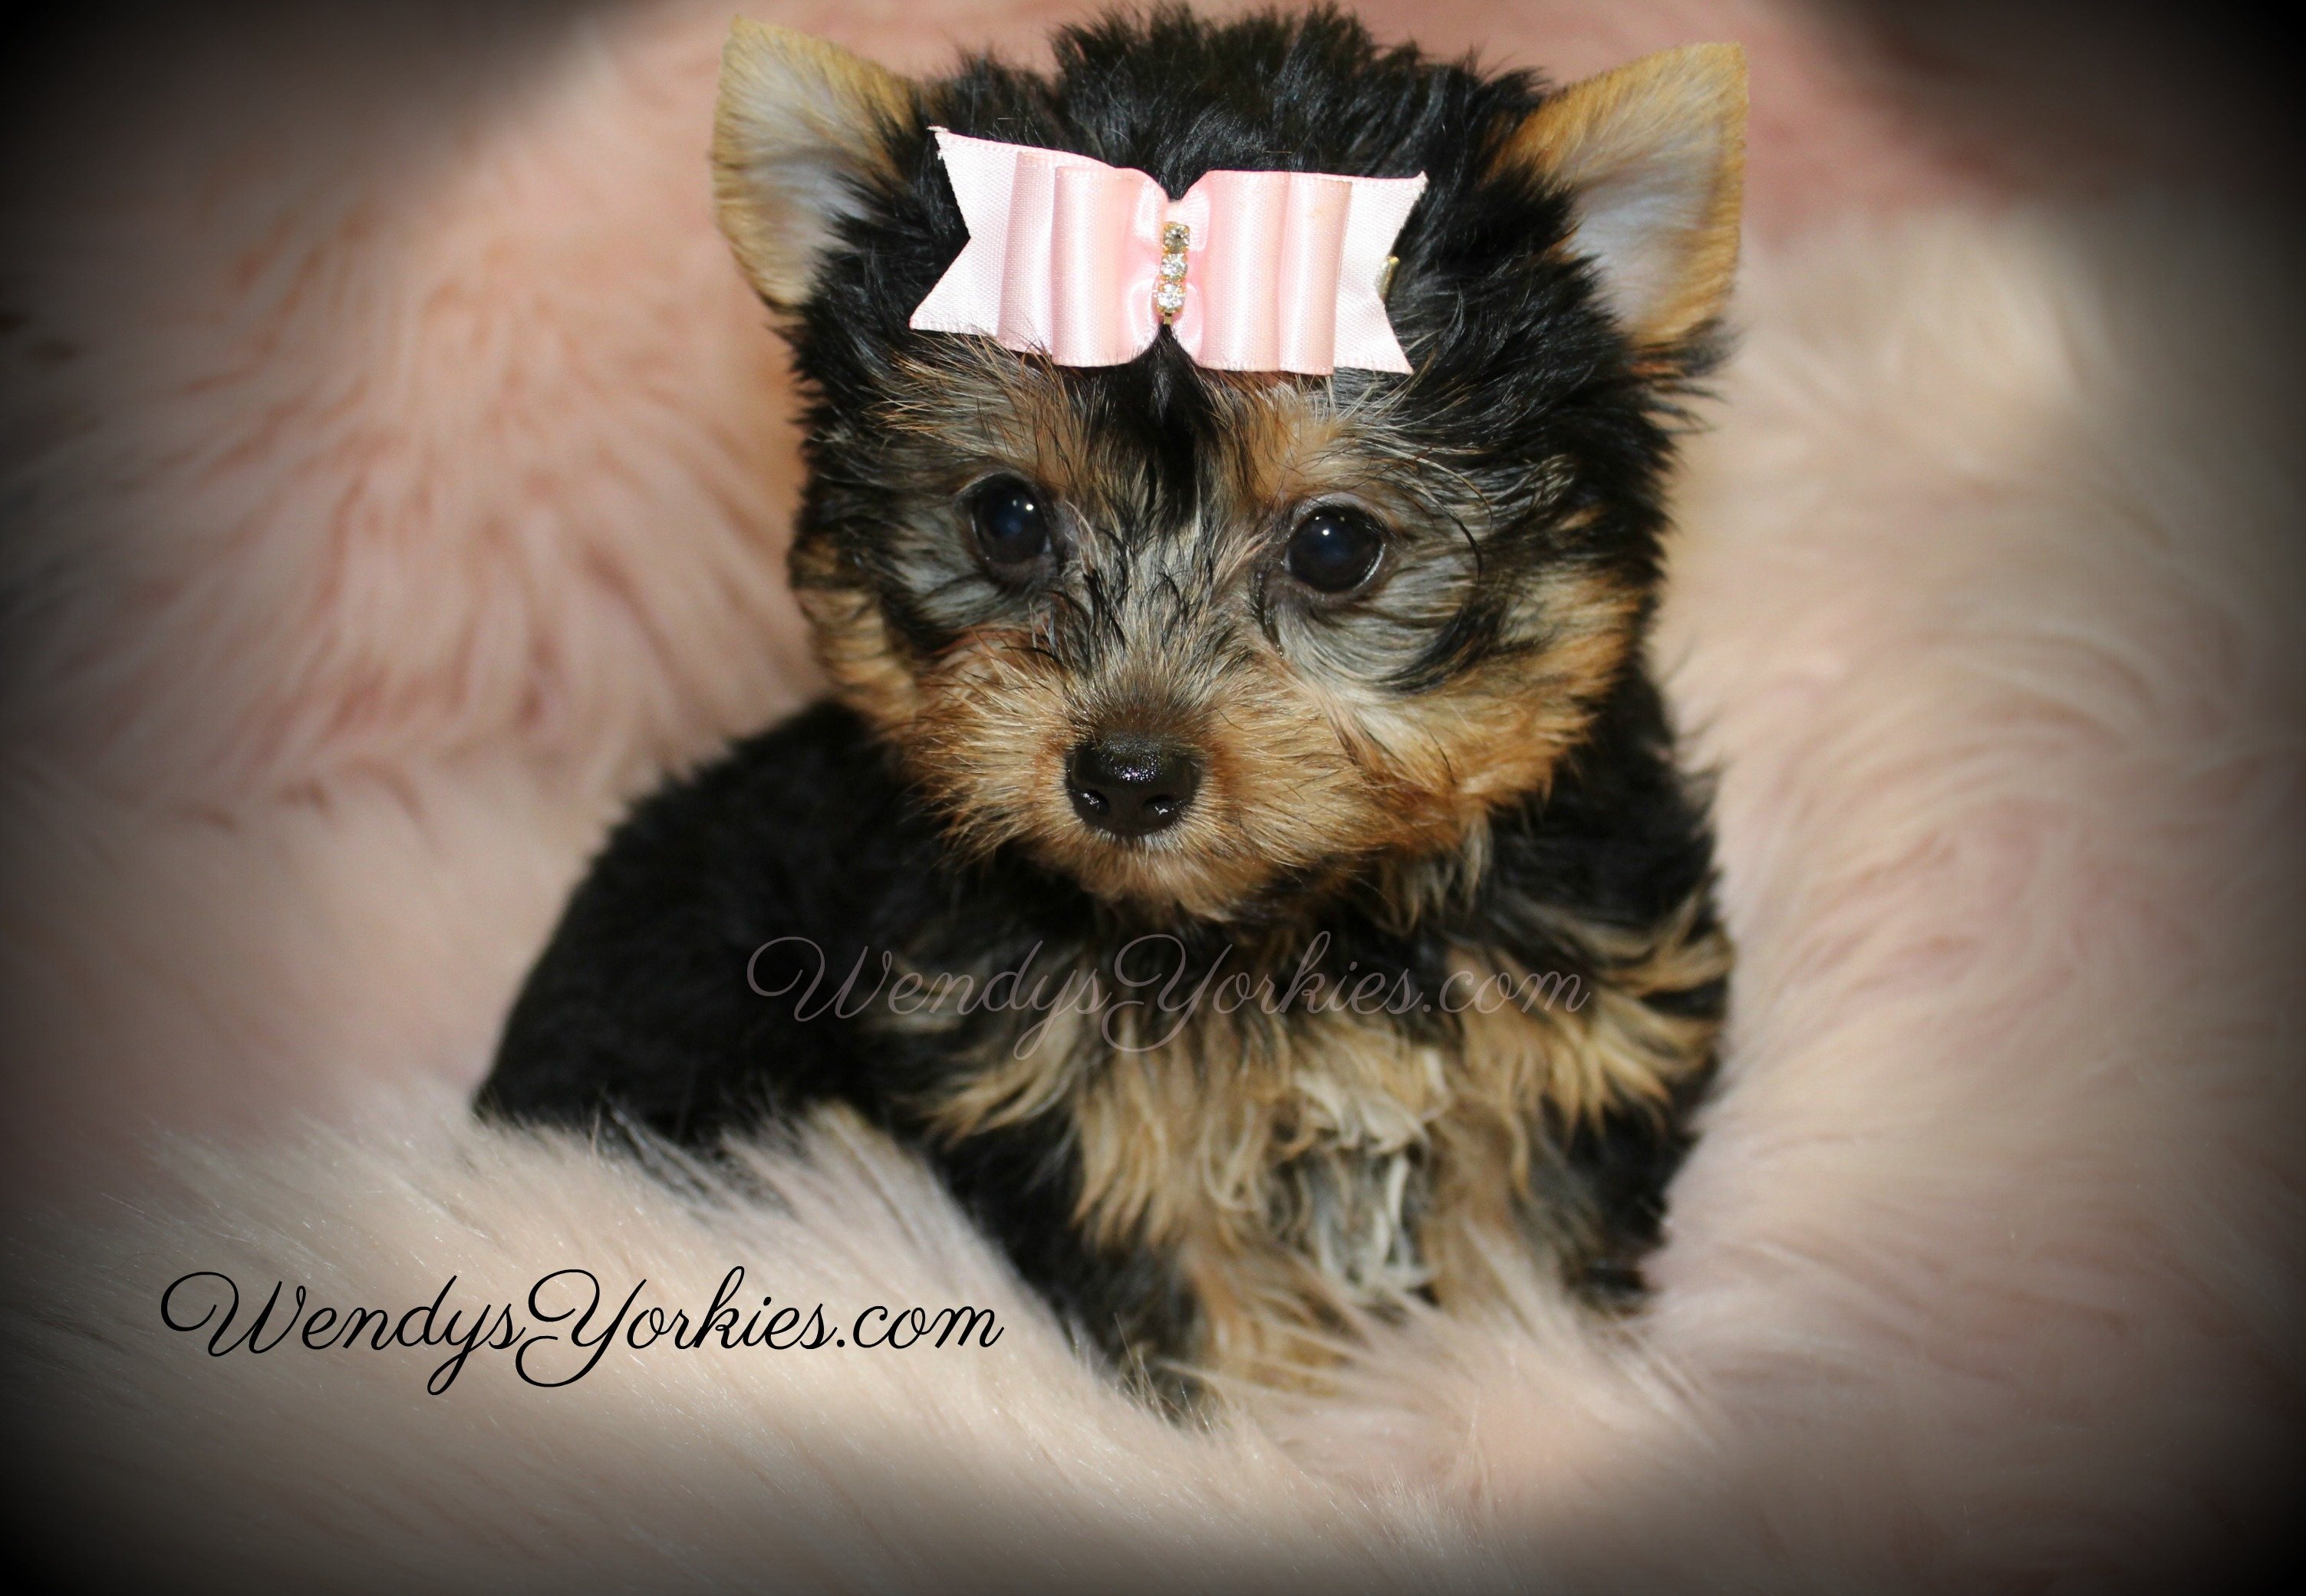 Teacup Female Yorkie puppy for sale, WendysYorkies.com, Lexie f